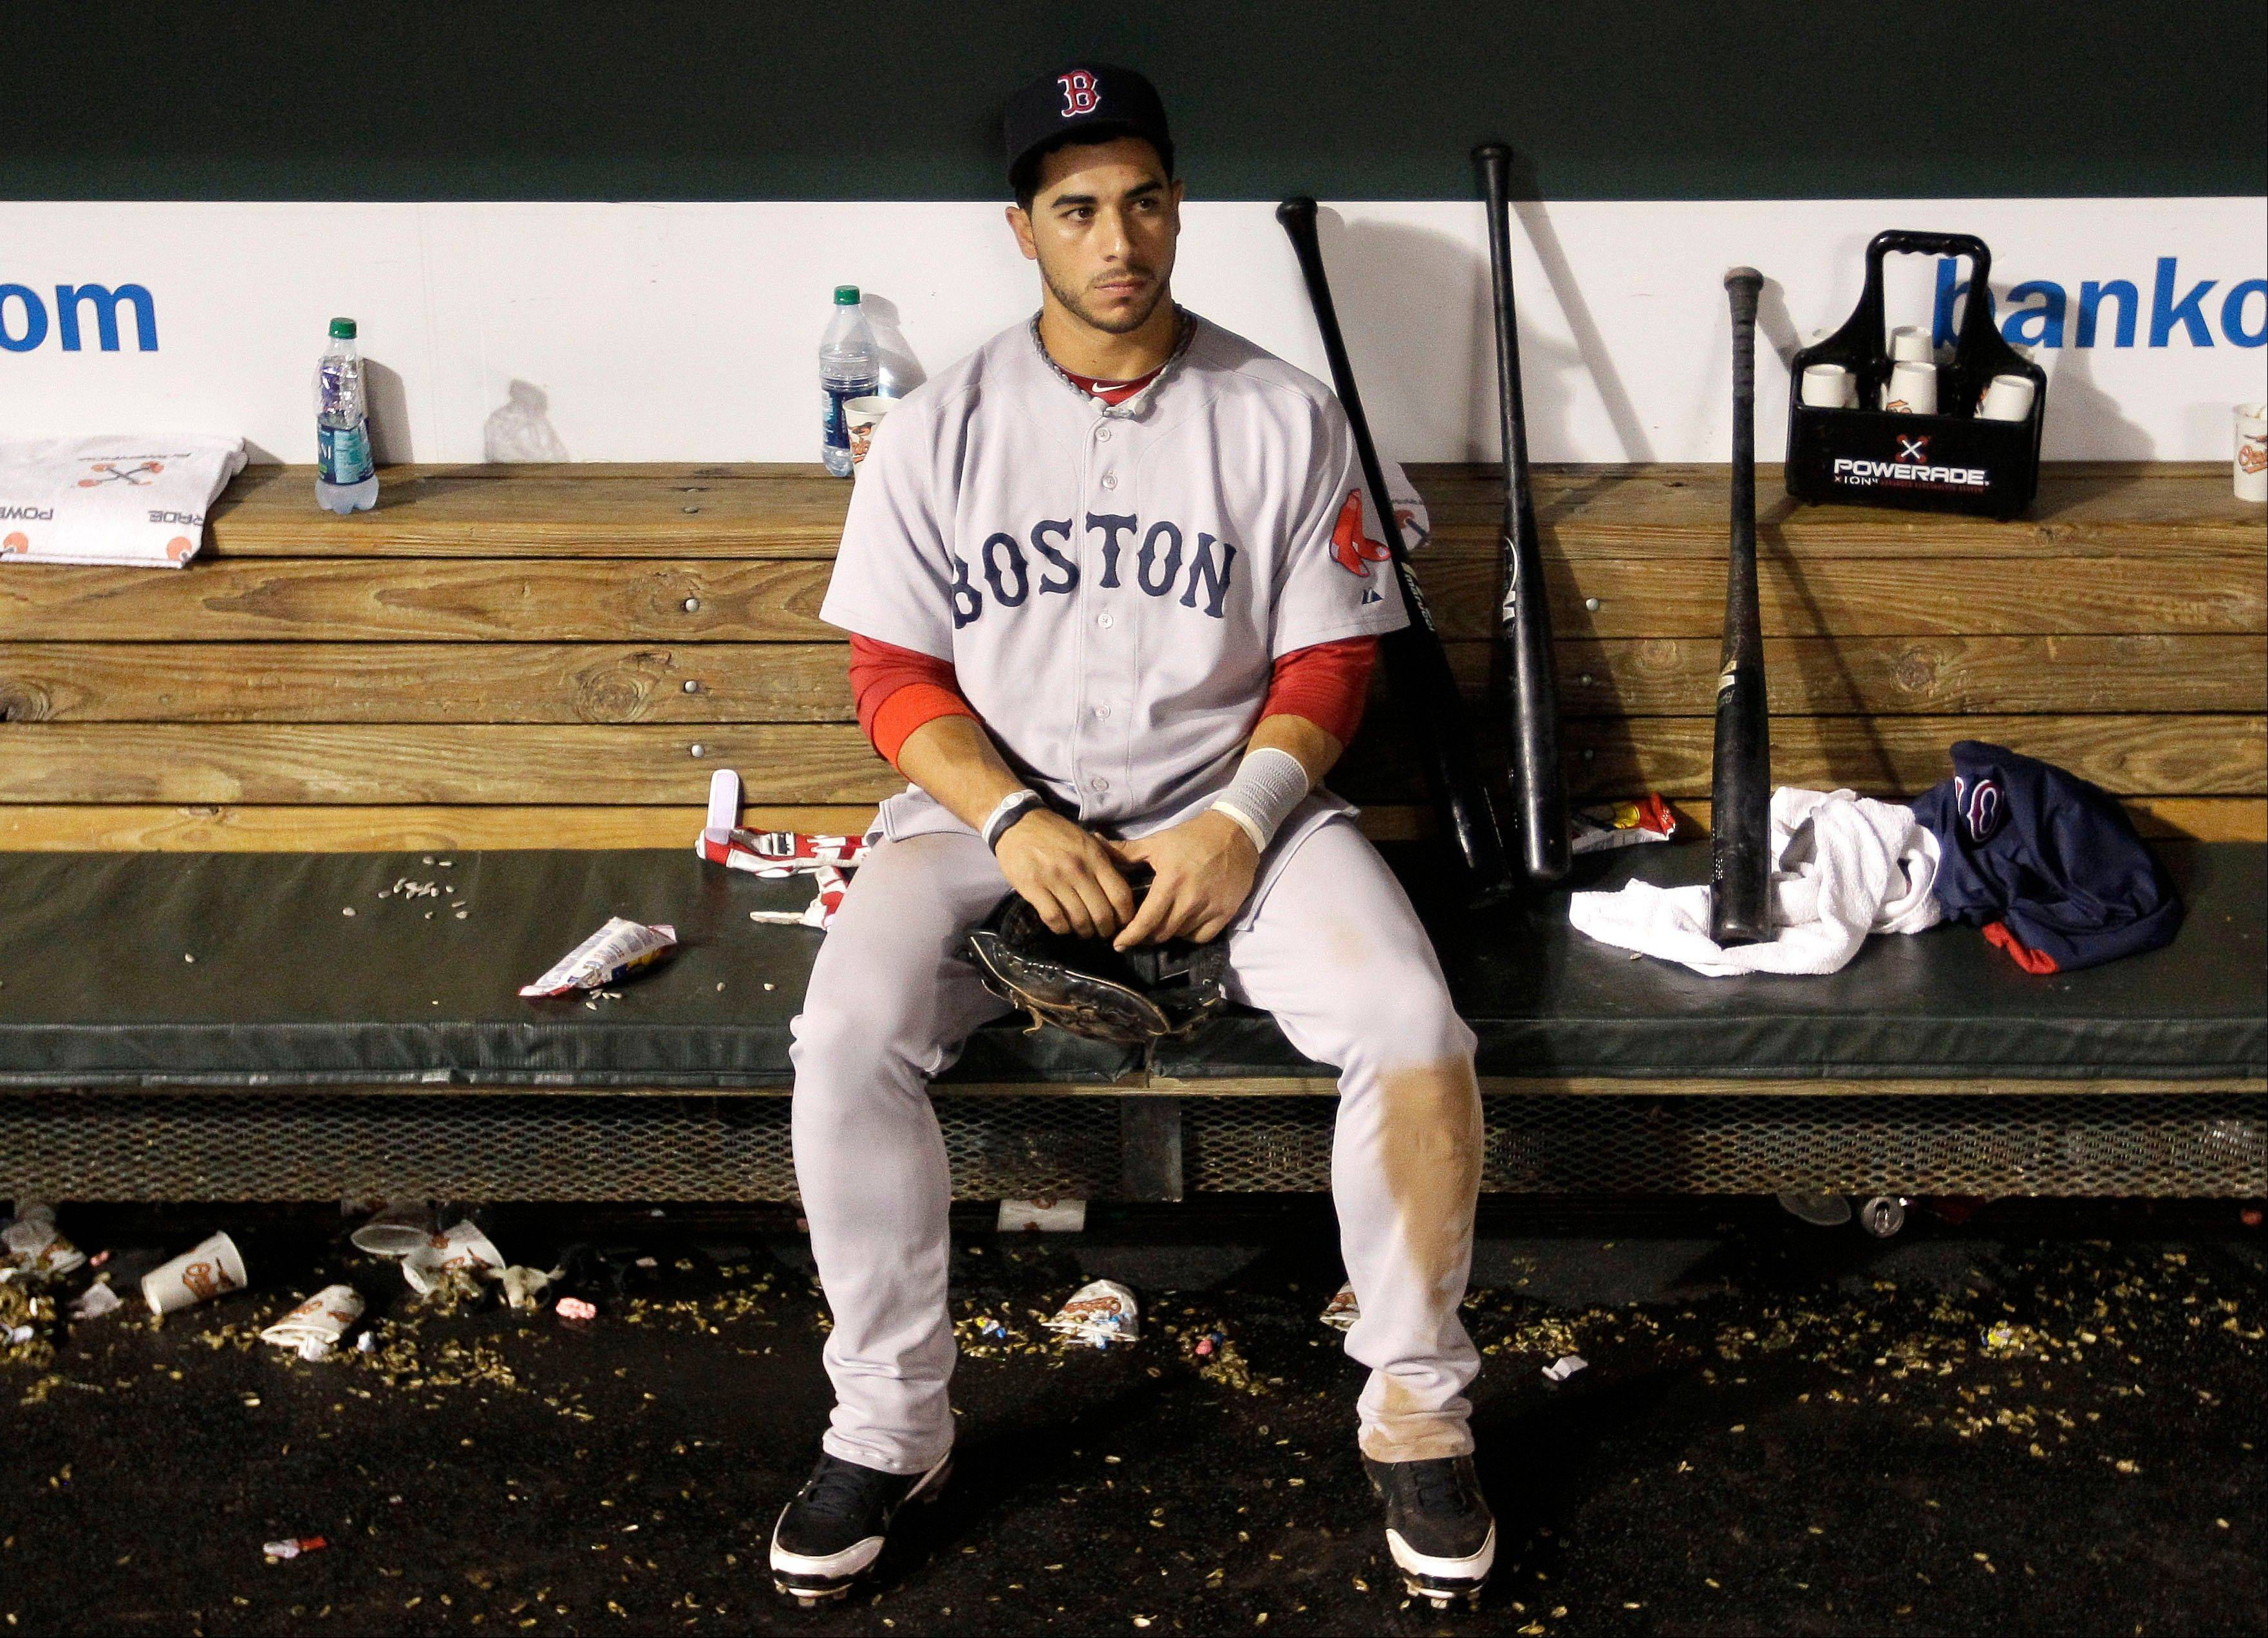 Boston Red Sox third baseman Mike Aviles sits in the dugout after Boston�s 4-3 loss to the Baltimore Orioles Wednesday in Baltimore. Boston was eliminated from the playoffs after the Tampa Bay Rays beat the New York Yankees in extra innings minutes after Boston�s loss.